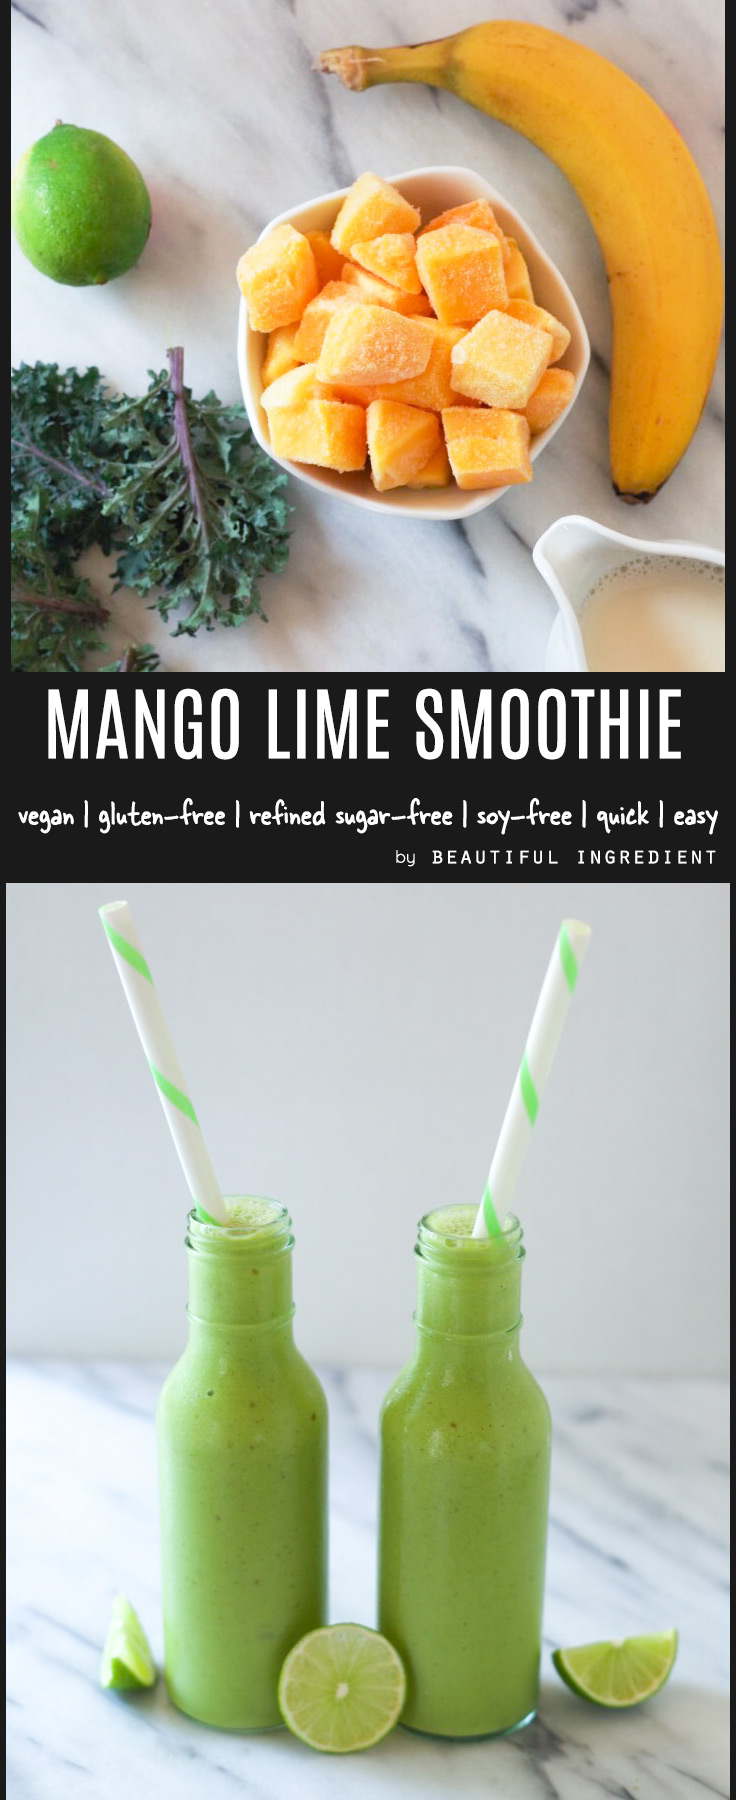 Mango Lime smoothie by Beautiful Ingredient.